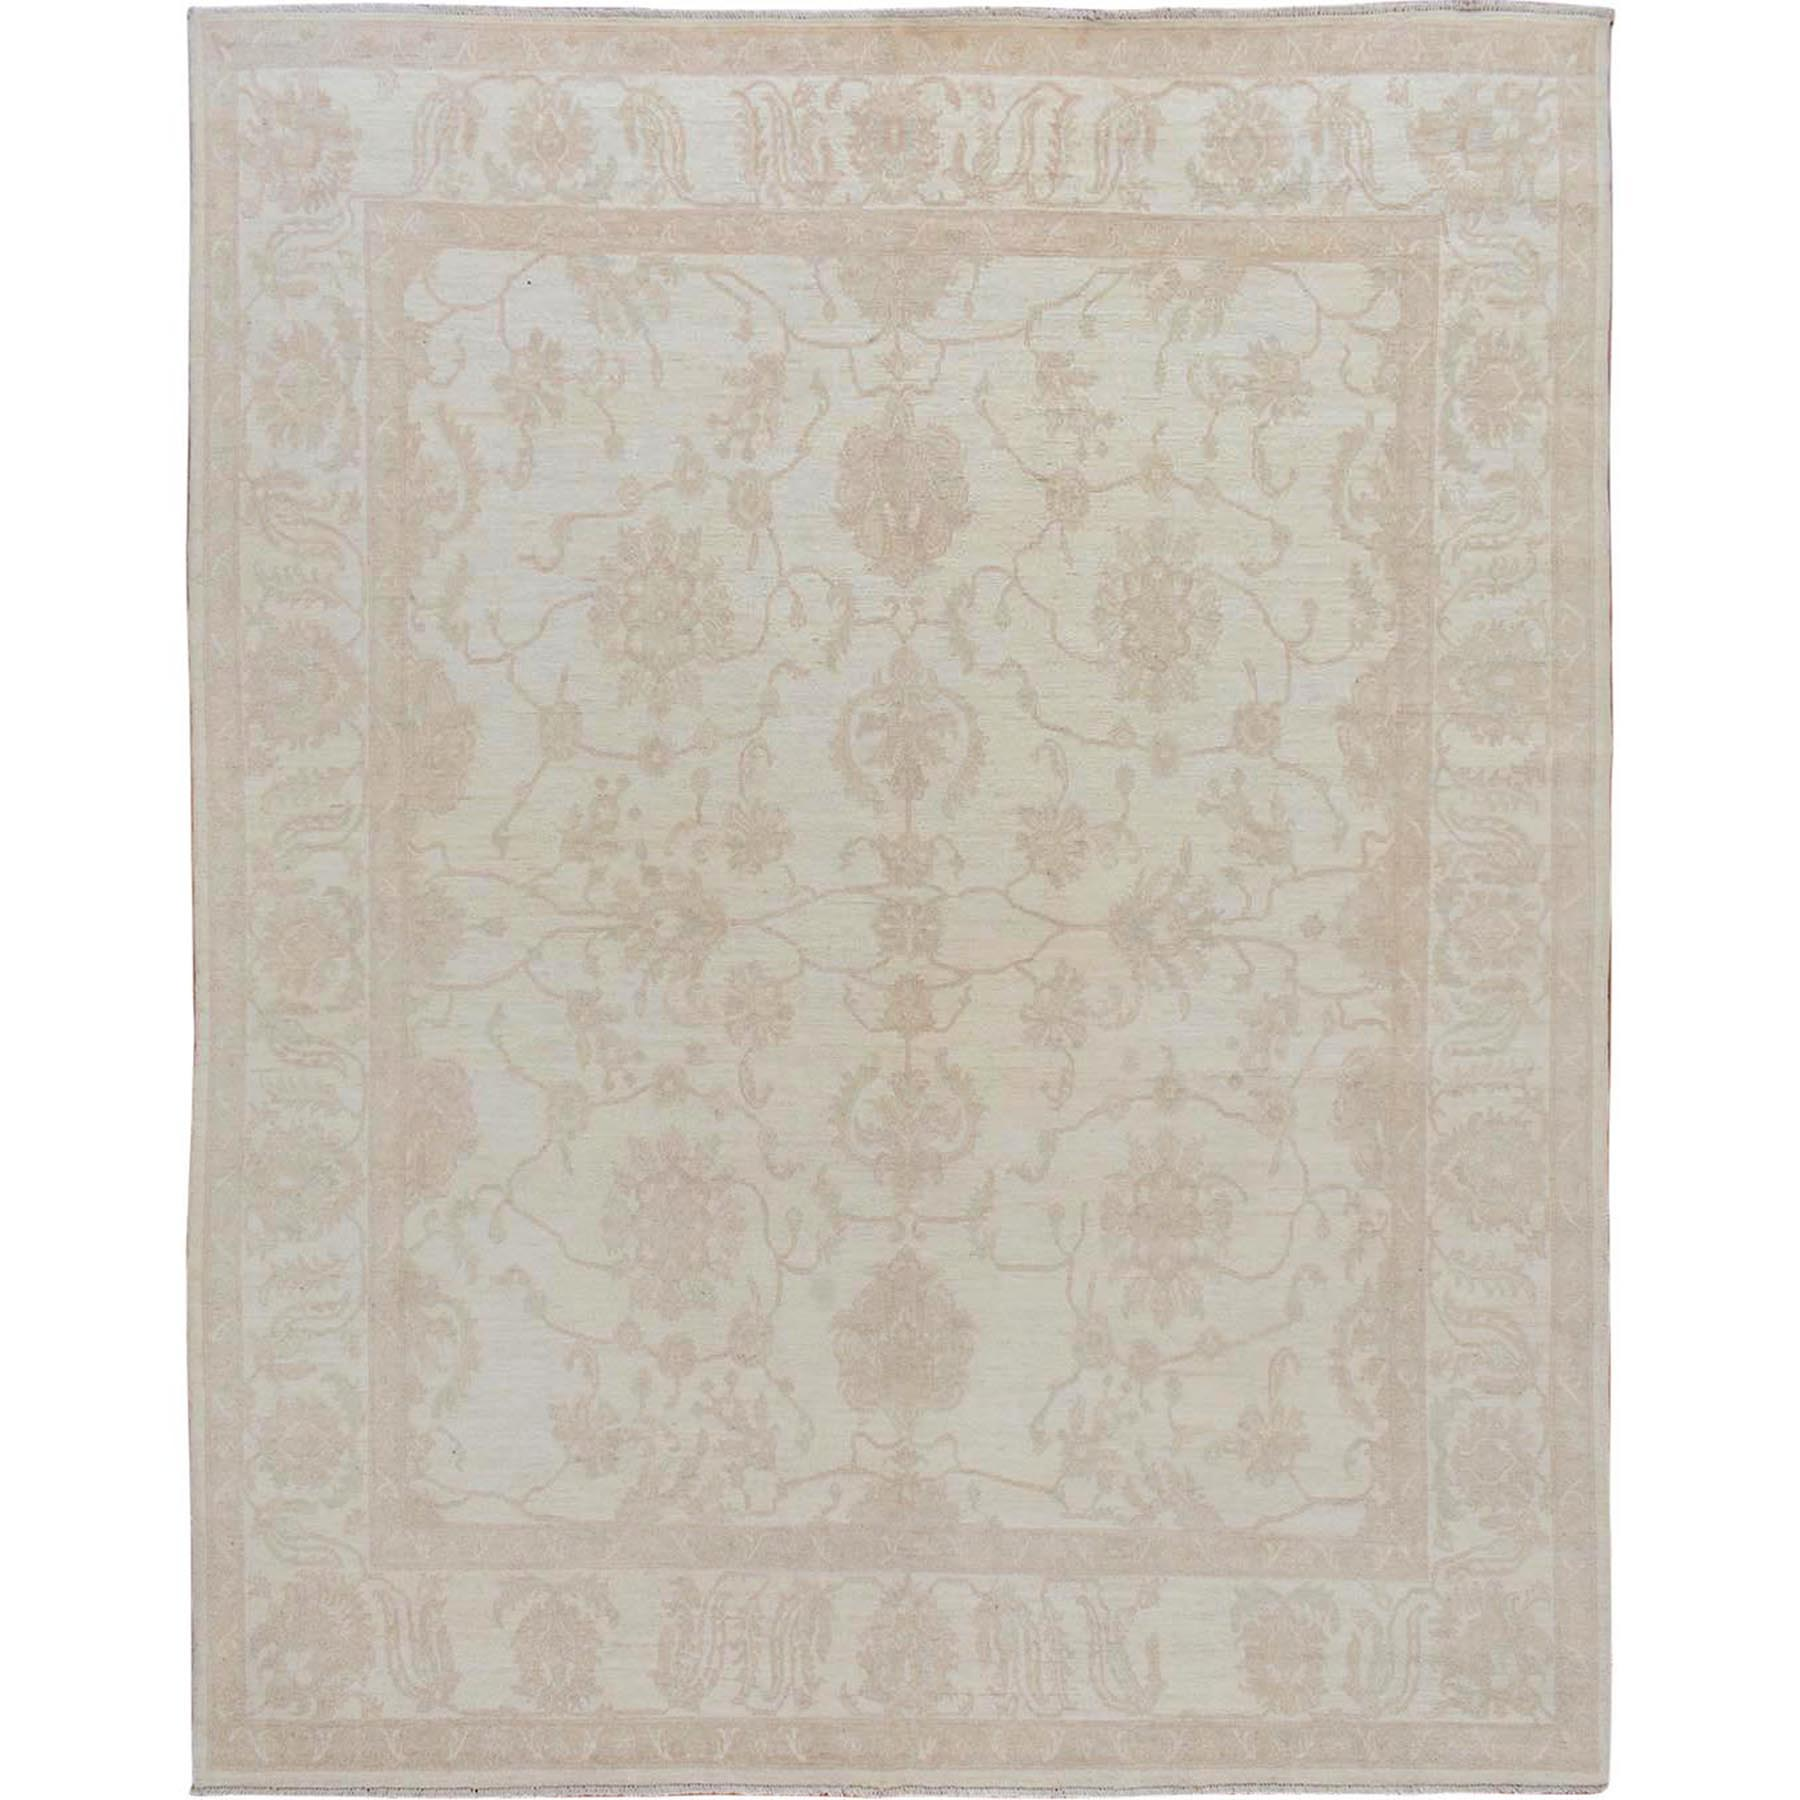 Agra And Turkish Collection Hand Knotted Ivory Rug No: 01115076